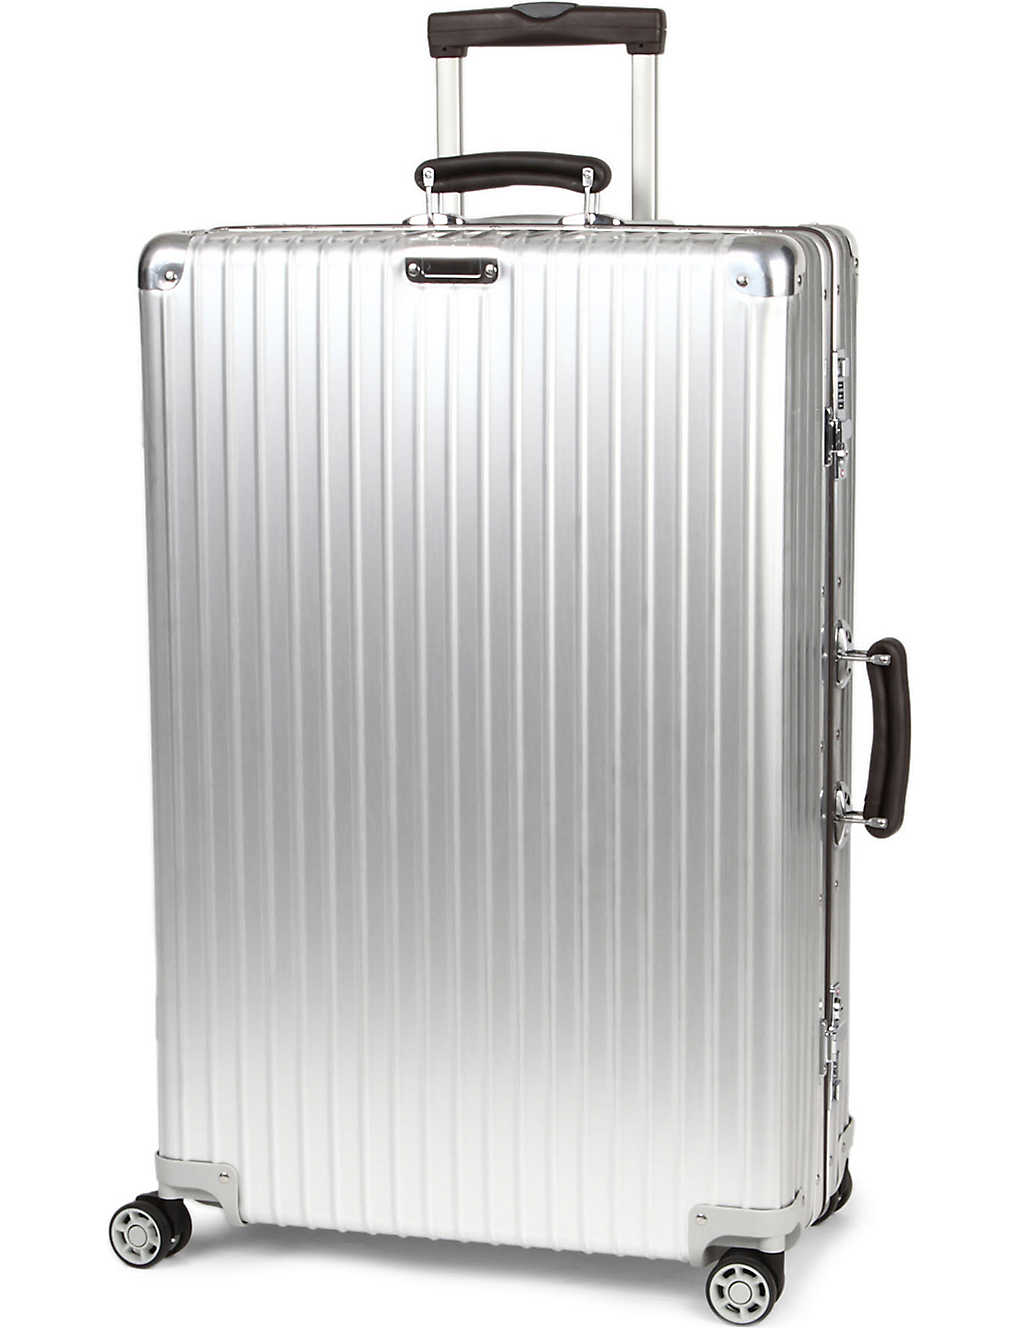 RIMOWA - Suitcases - Luggage - Bags - Selfridges | Shop Online